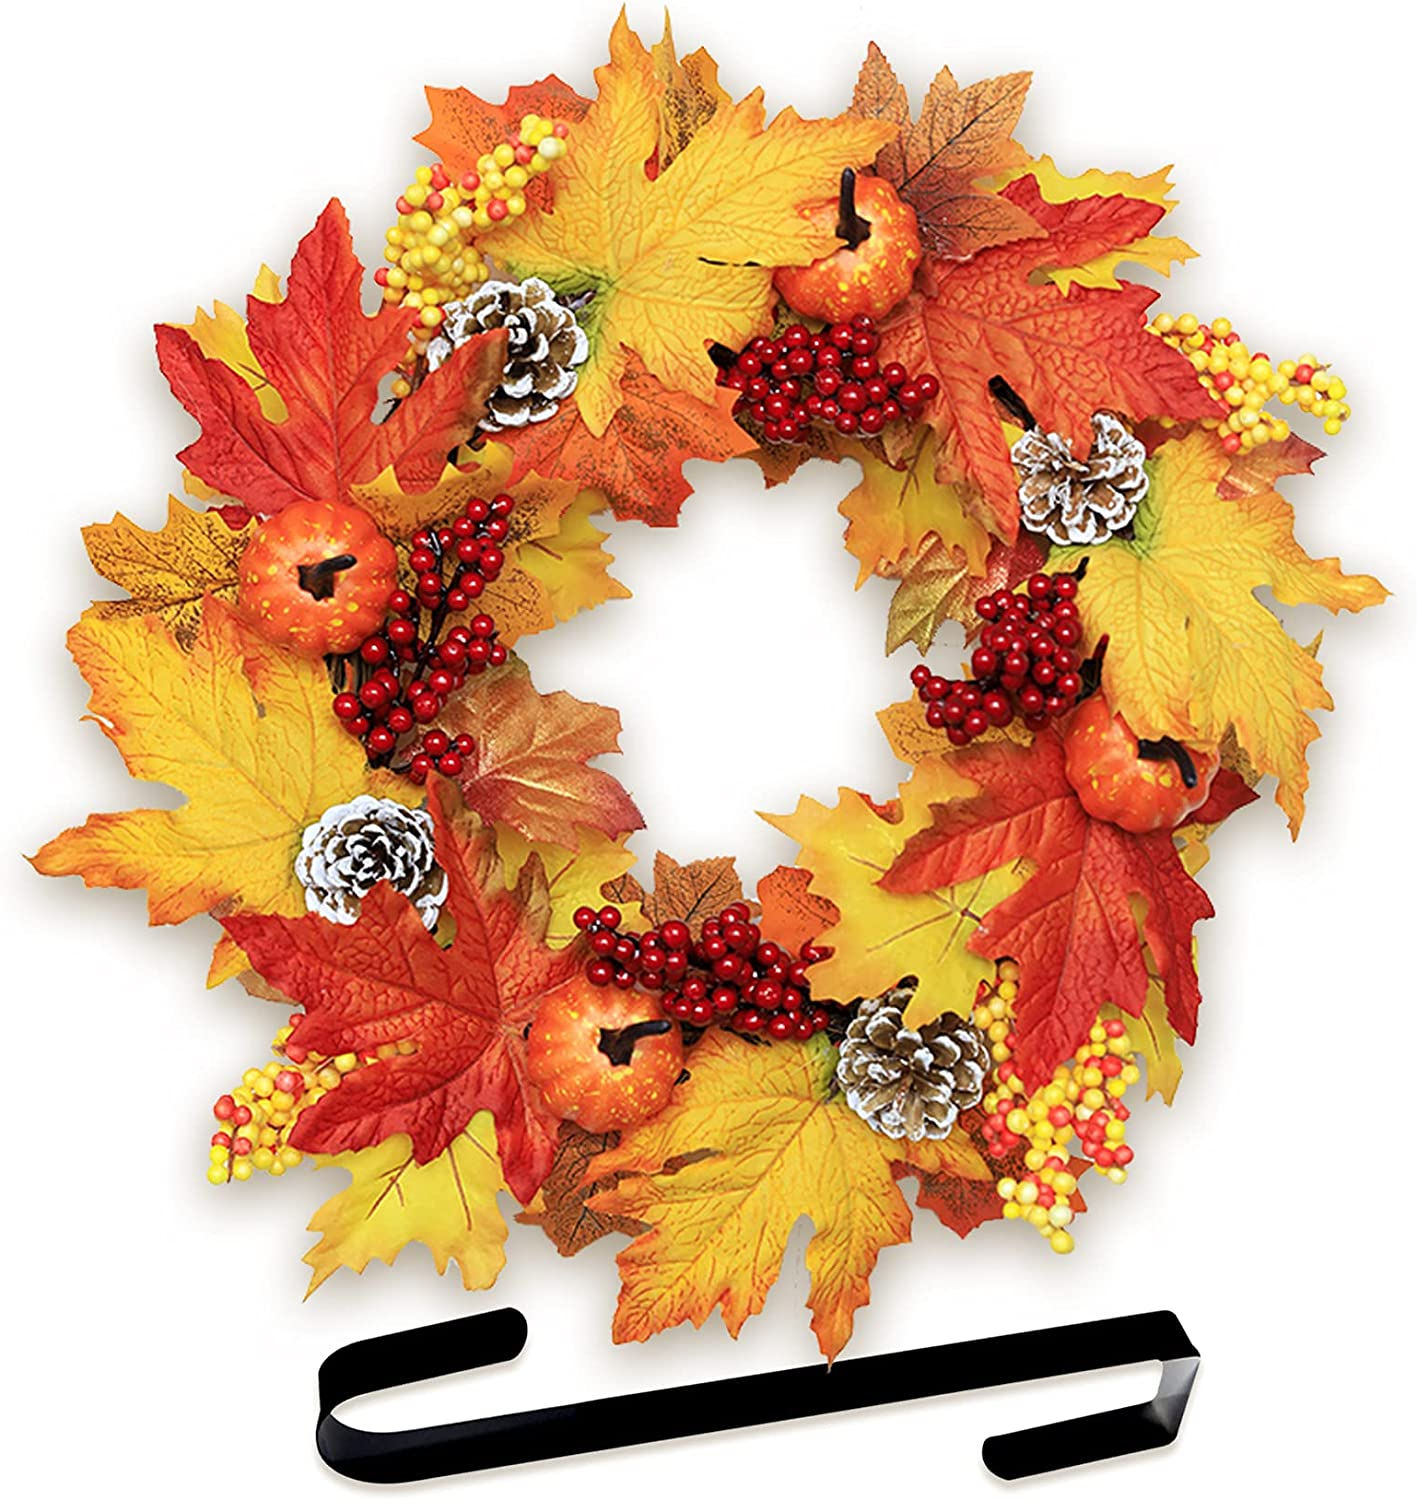 Halafs 25 Inch Fall Wreaths for Wall Max 66% OFF Dec Door Porch Fashion Front